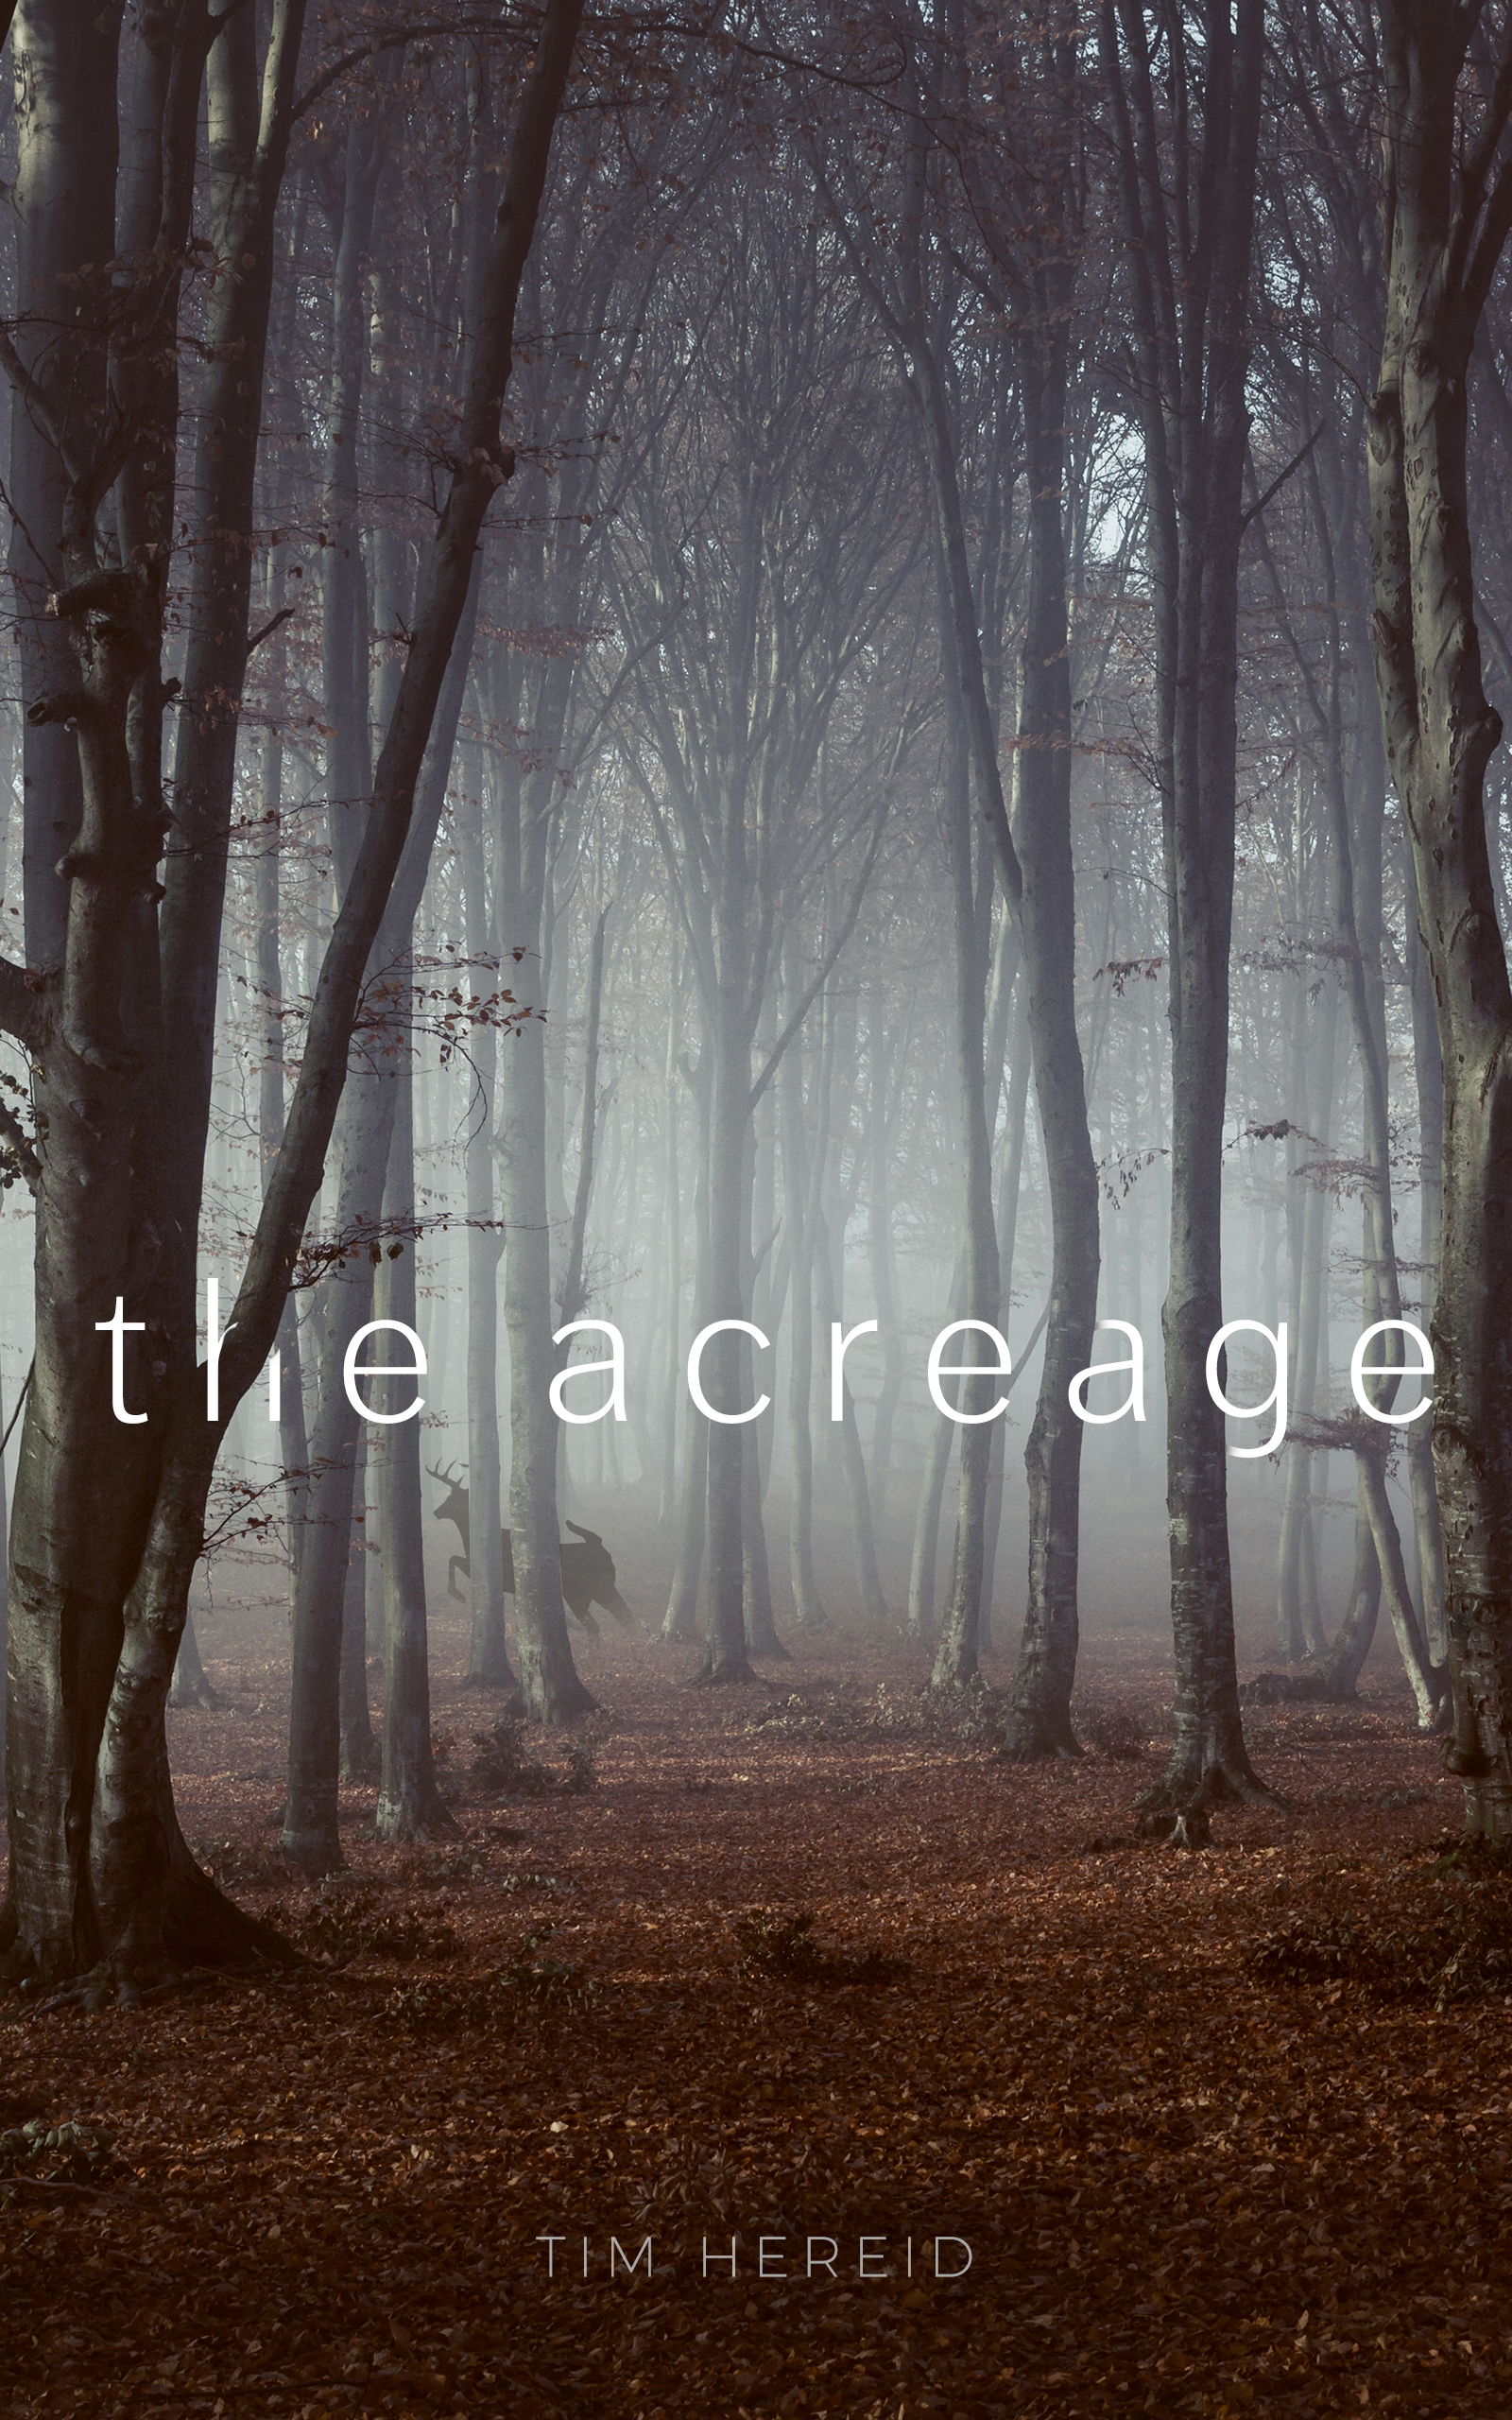 The Acreage - A story of silence and trespass.All year, Greg Harris longs for nothing more than the silence and peace of hunting in his 300 acre woods. When he sets out on his first day of bow hunting, he looks forward to a full week of quiet solitude, even the forest isn't what it used to be and a new housing development has cropped up on his southern property line. When someone breaks into his truck, he begins to wonder if he's alone in the woods. With only his wit and the reluctant help of Donny Schmidt, a hapless local cop, Harris has to find out who, if anyone, is on his land and what they want before they do harm to the acreage or kill him with a stray bullet.